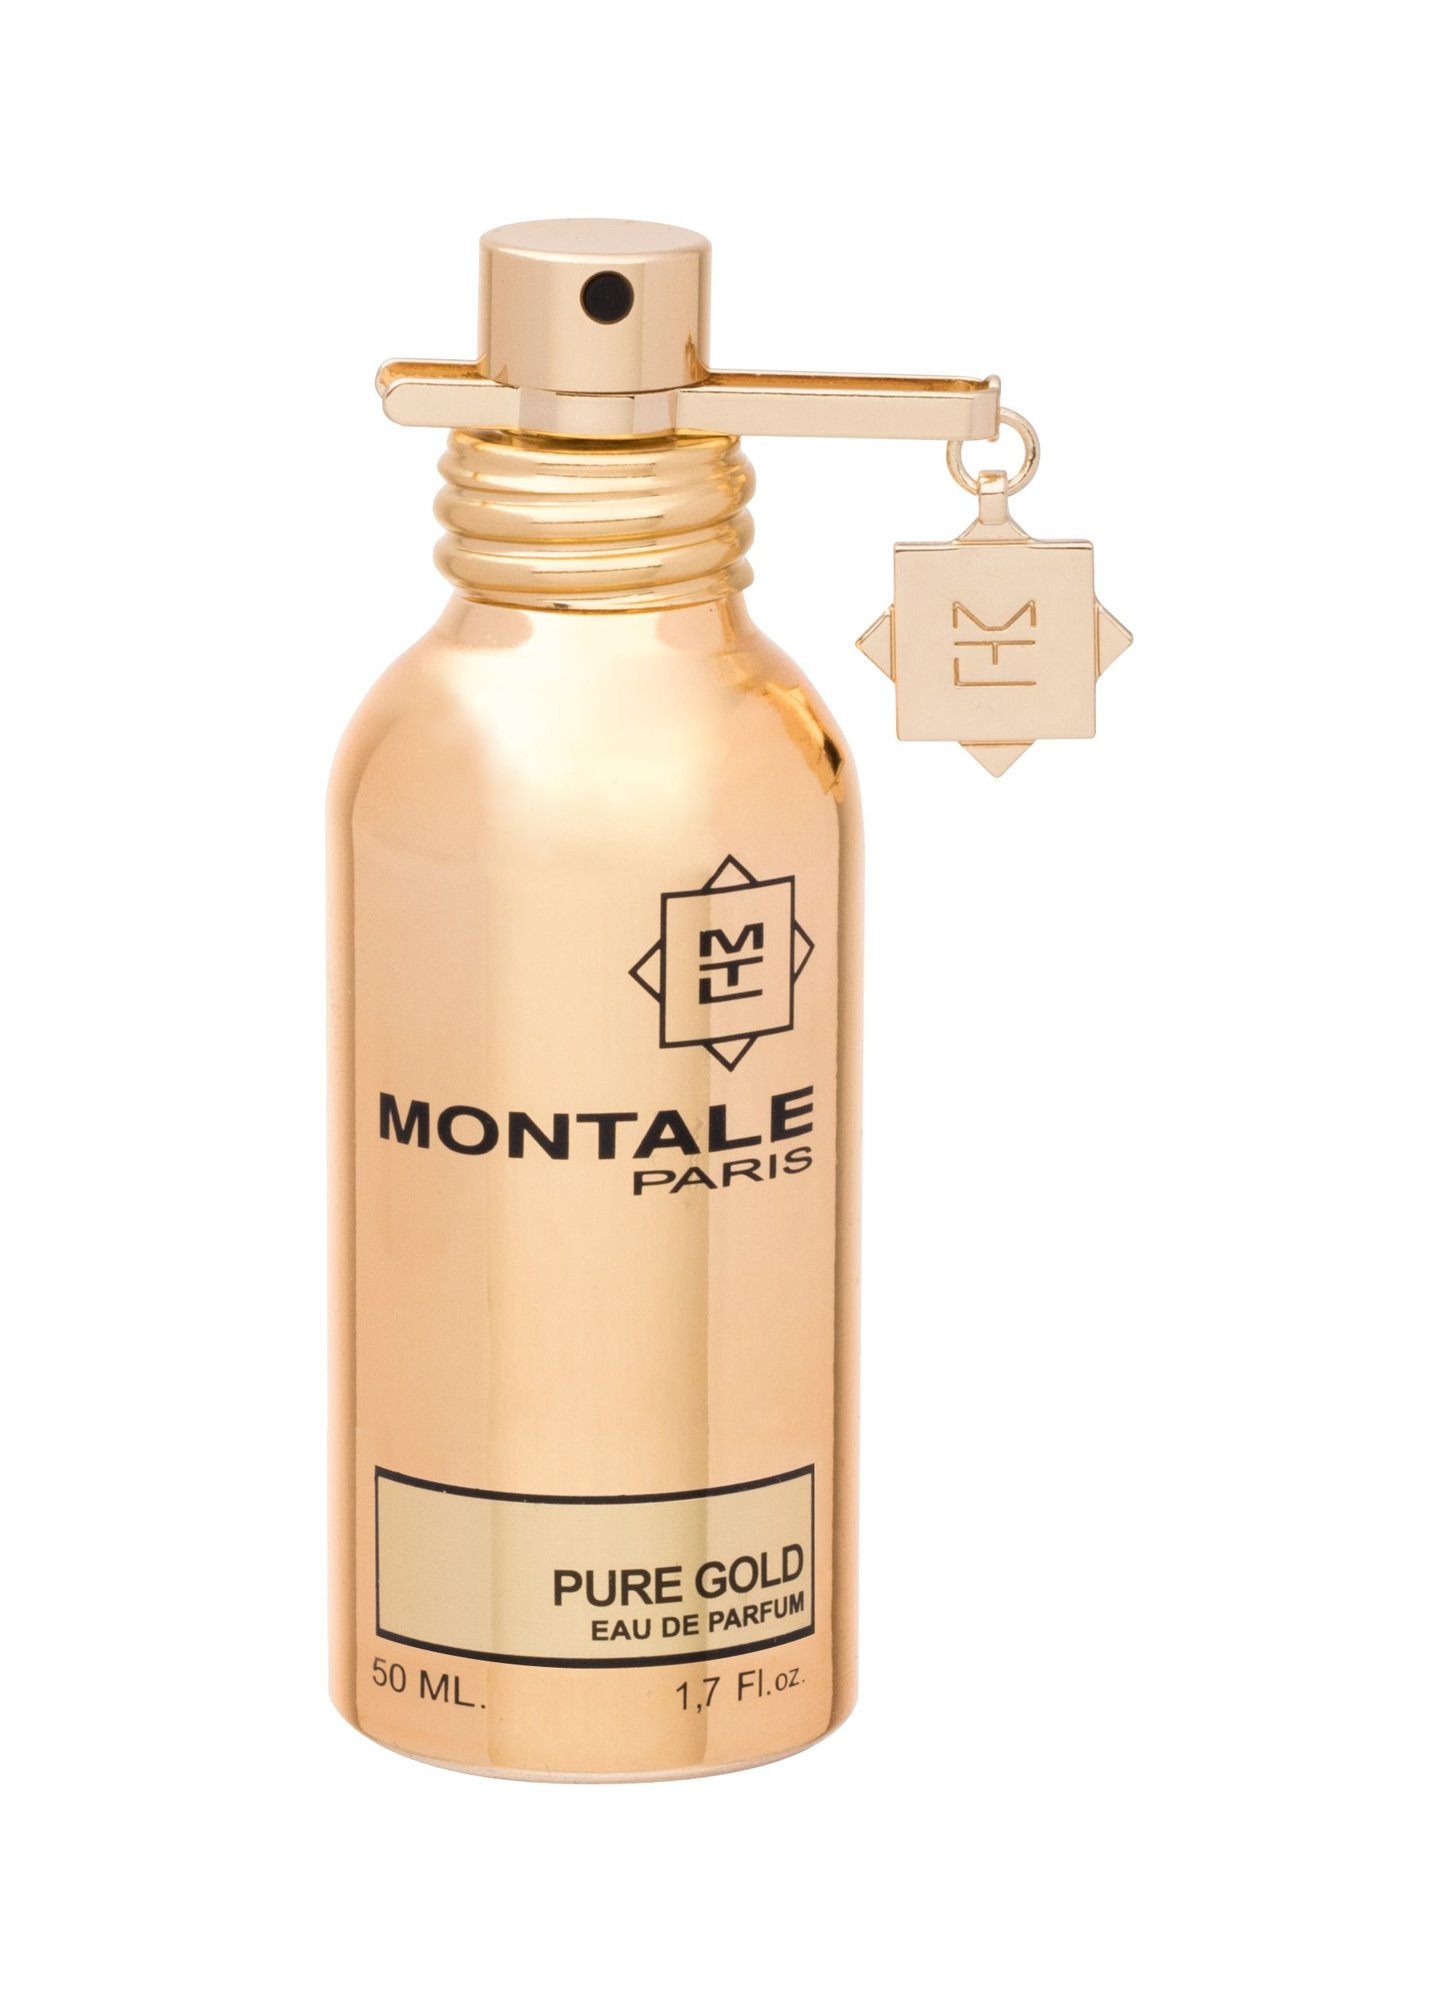 Montale Paris Pure Gold EDP 50ml